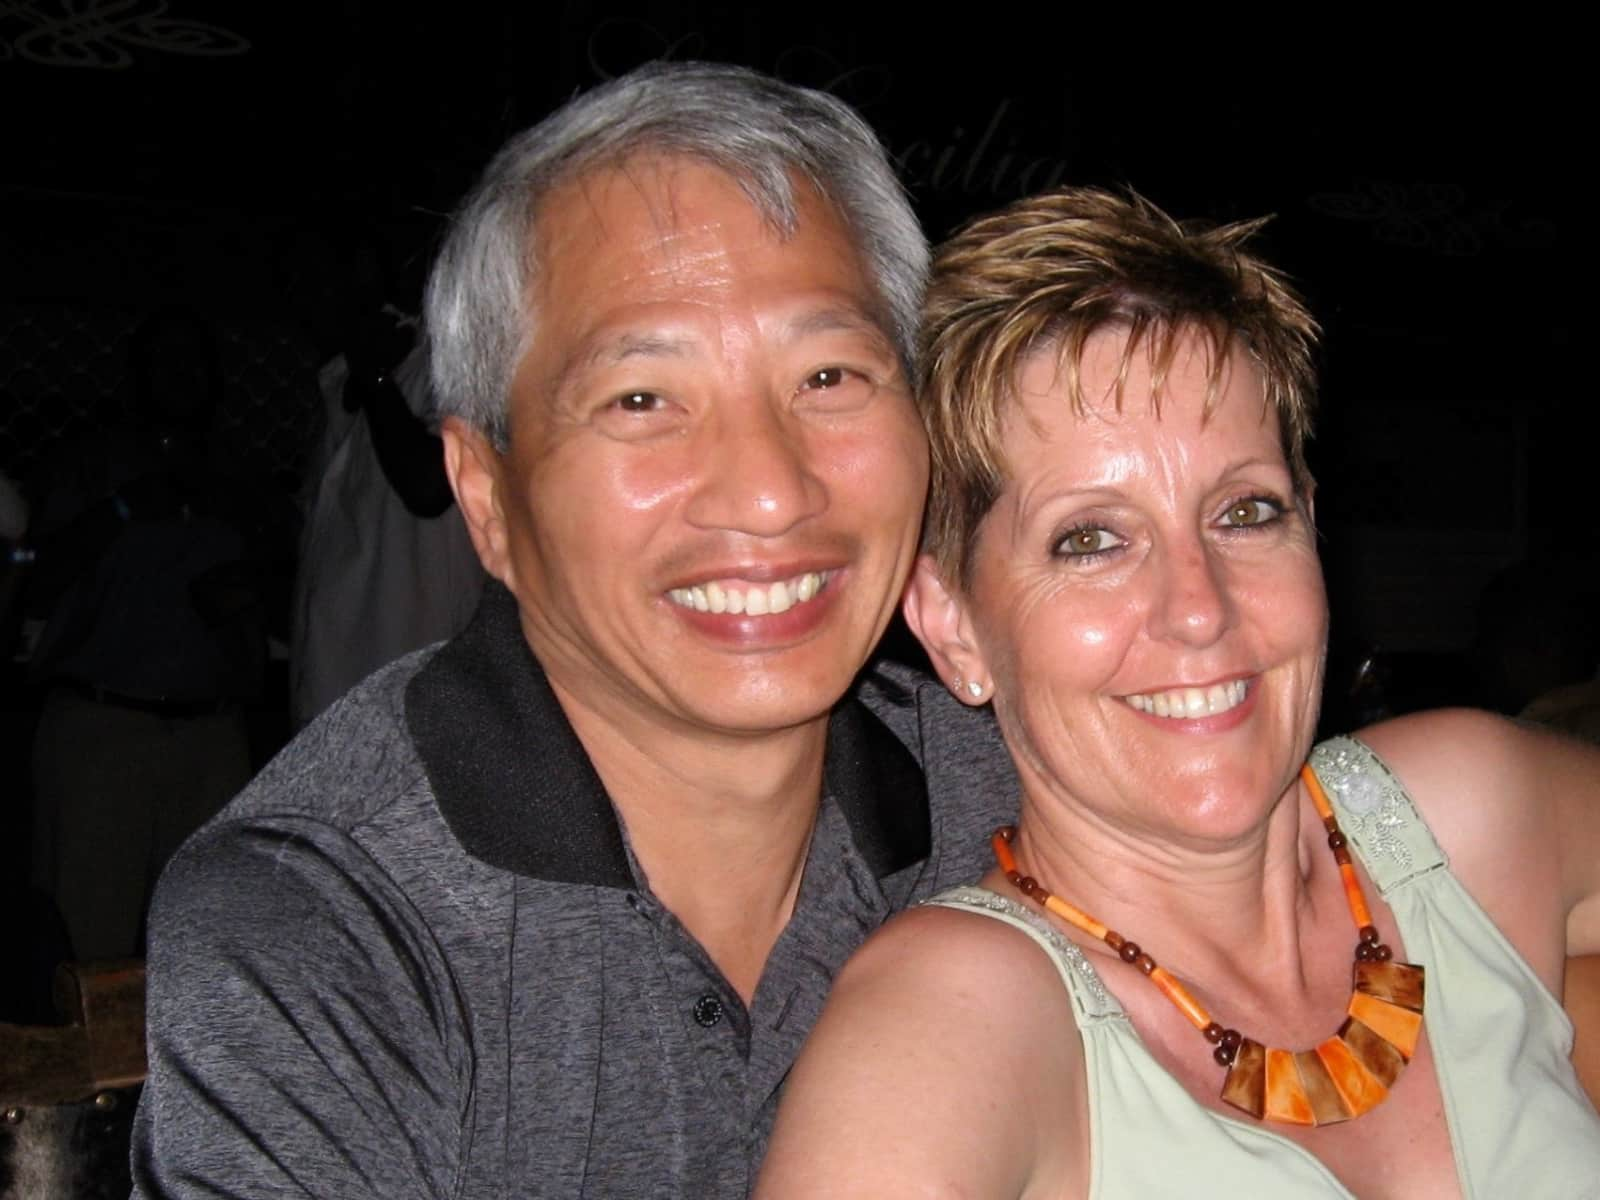 Maggi & Blunden from Chiang Mai, Thailand